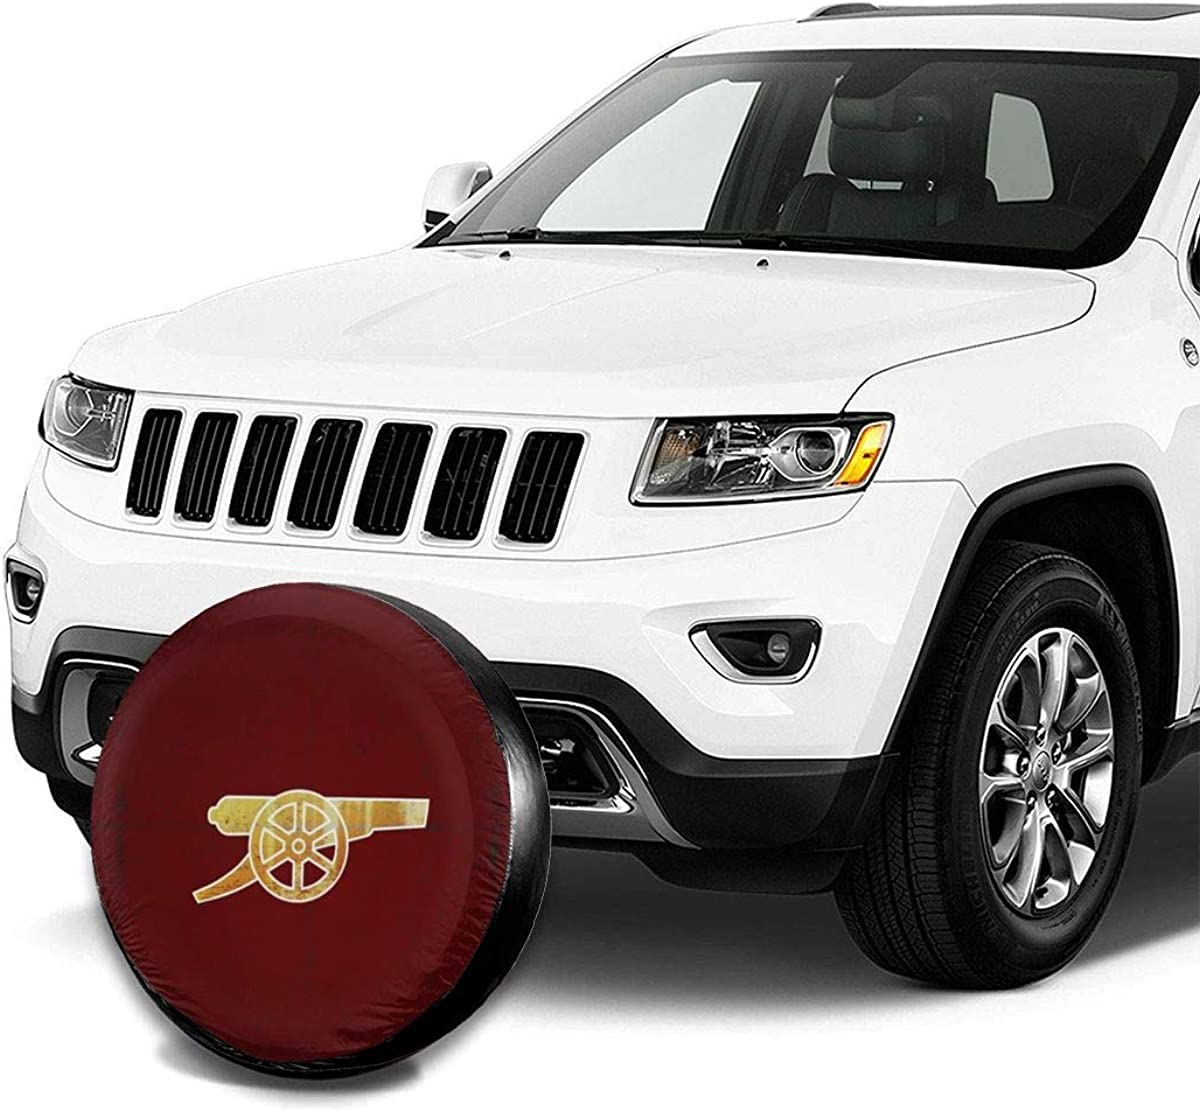 UTWJLTL Tire Cover American Eagle Flag Polyester Universal Spare Wheel Tire Cover Wheel Covers for Trailer RV SUV Truck Camper Travel Trailer Accessories 15 Inch